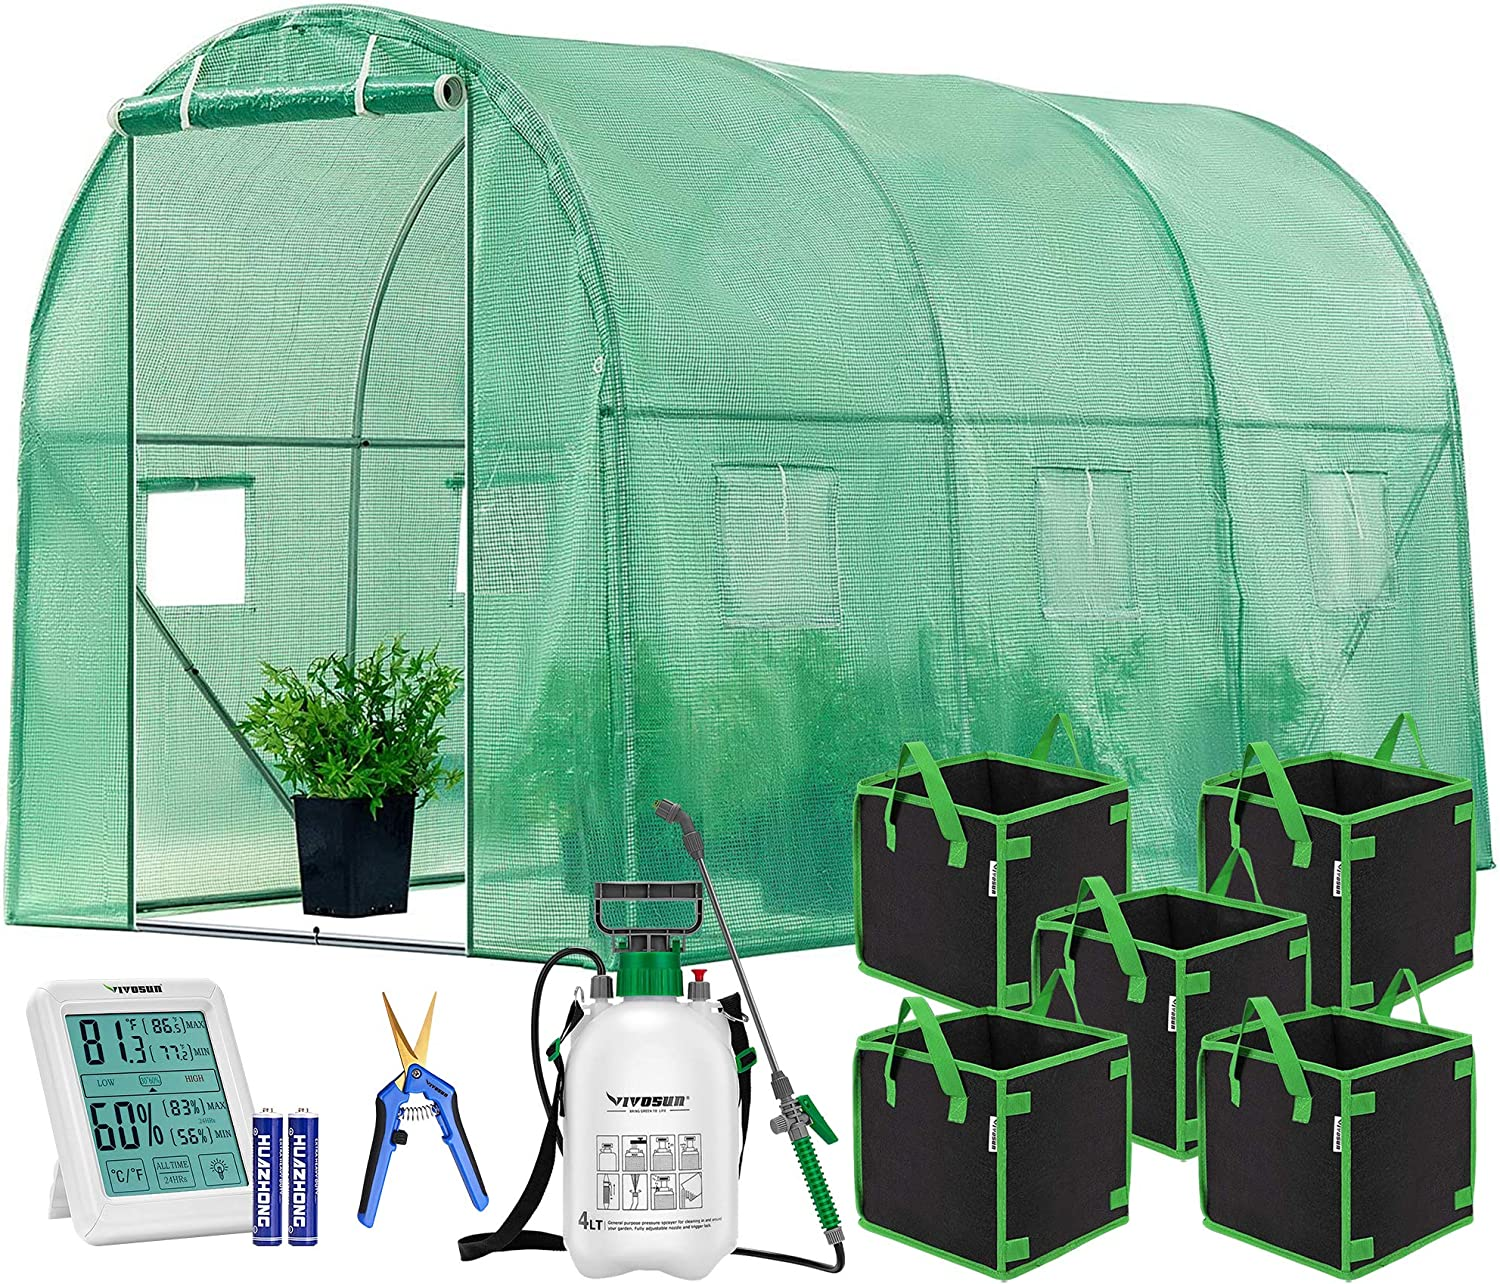 VIVOSUN 10x7x7FT Large Walk in Greenhouse, Square Grow Bags, Garden Pump Pressure Sprayer, Hand Pruner and Thermometer and Hygrometer